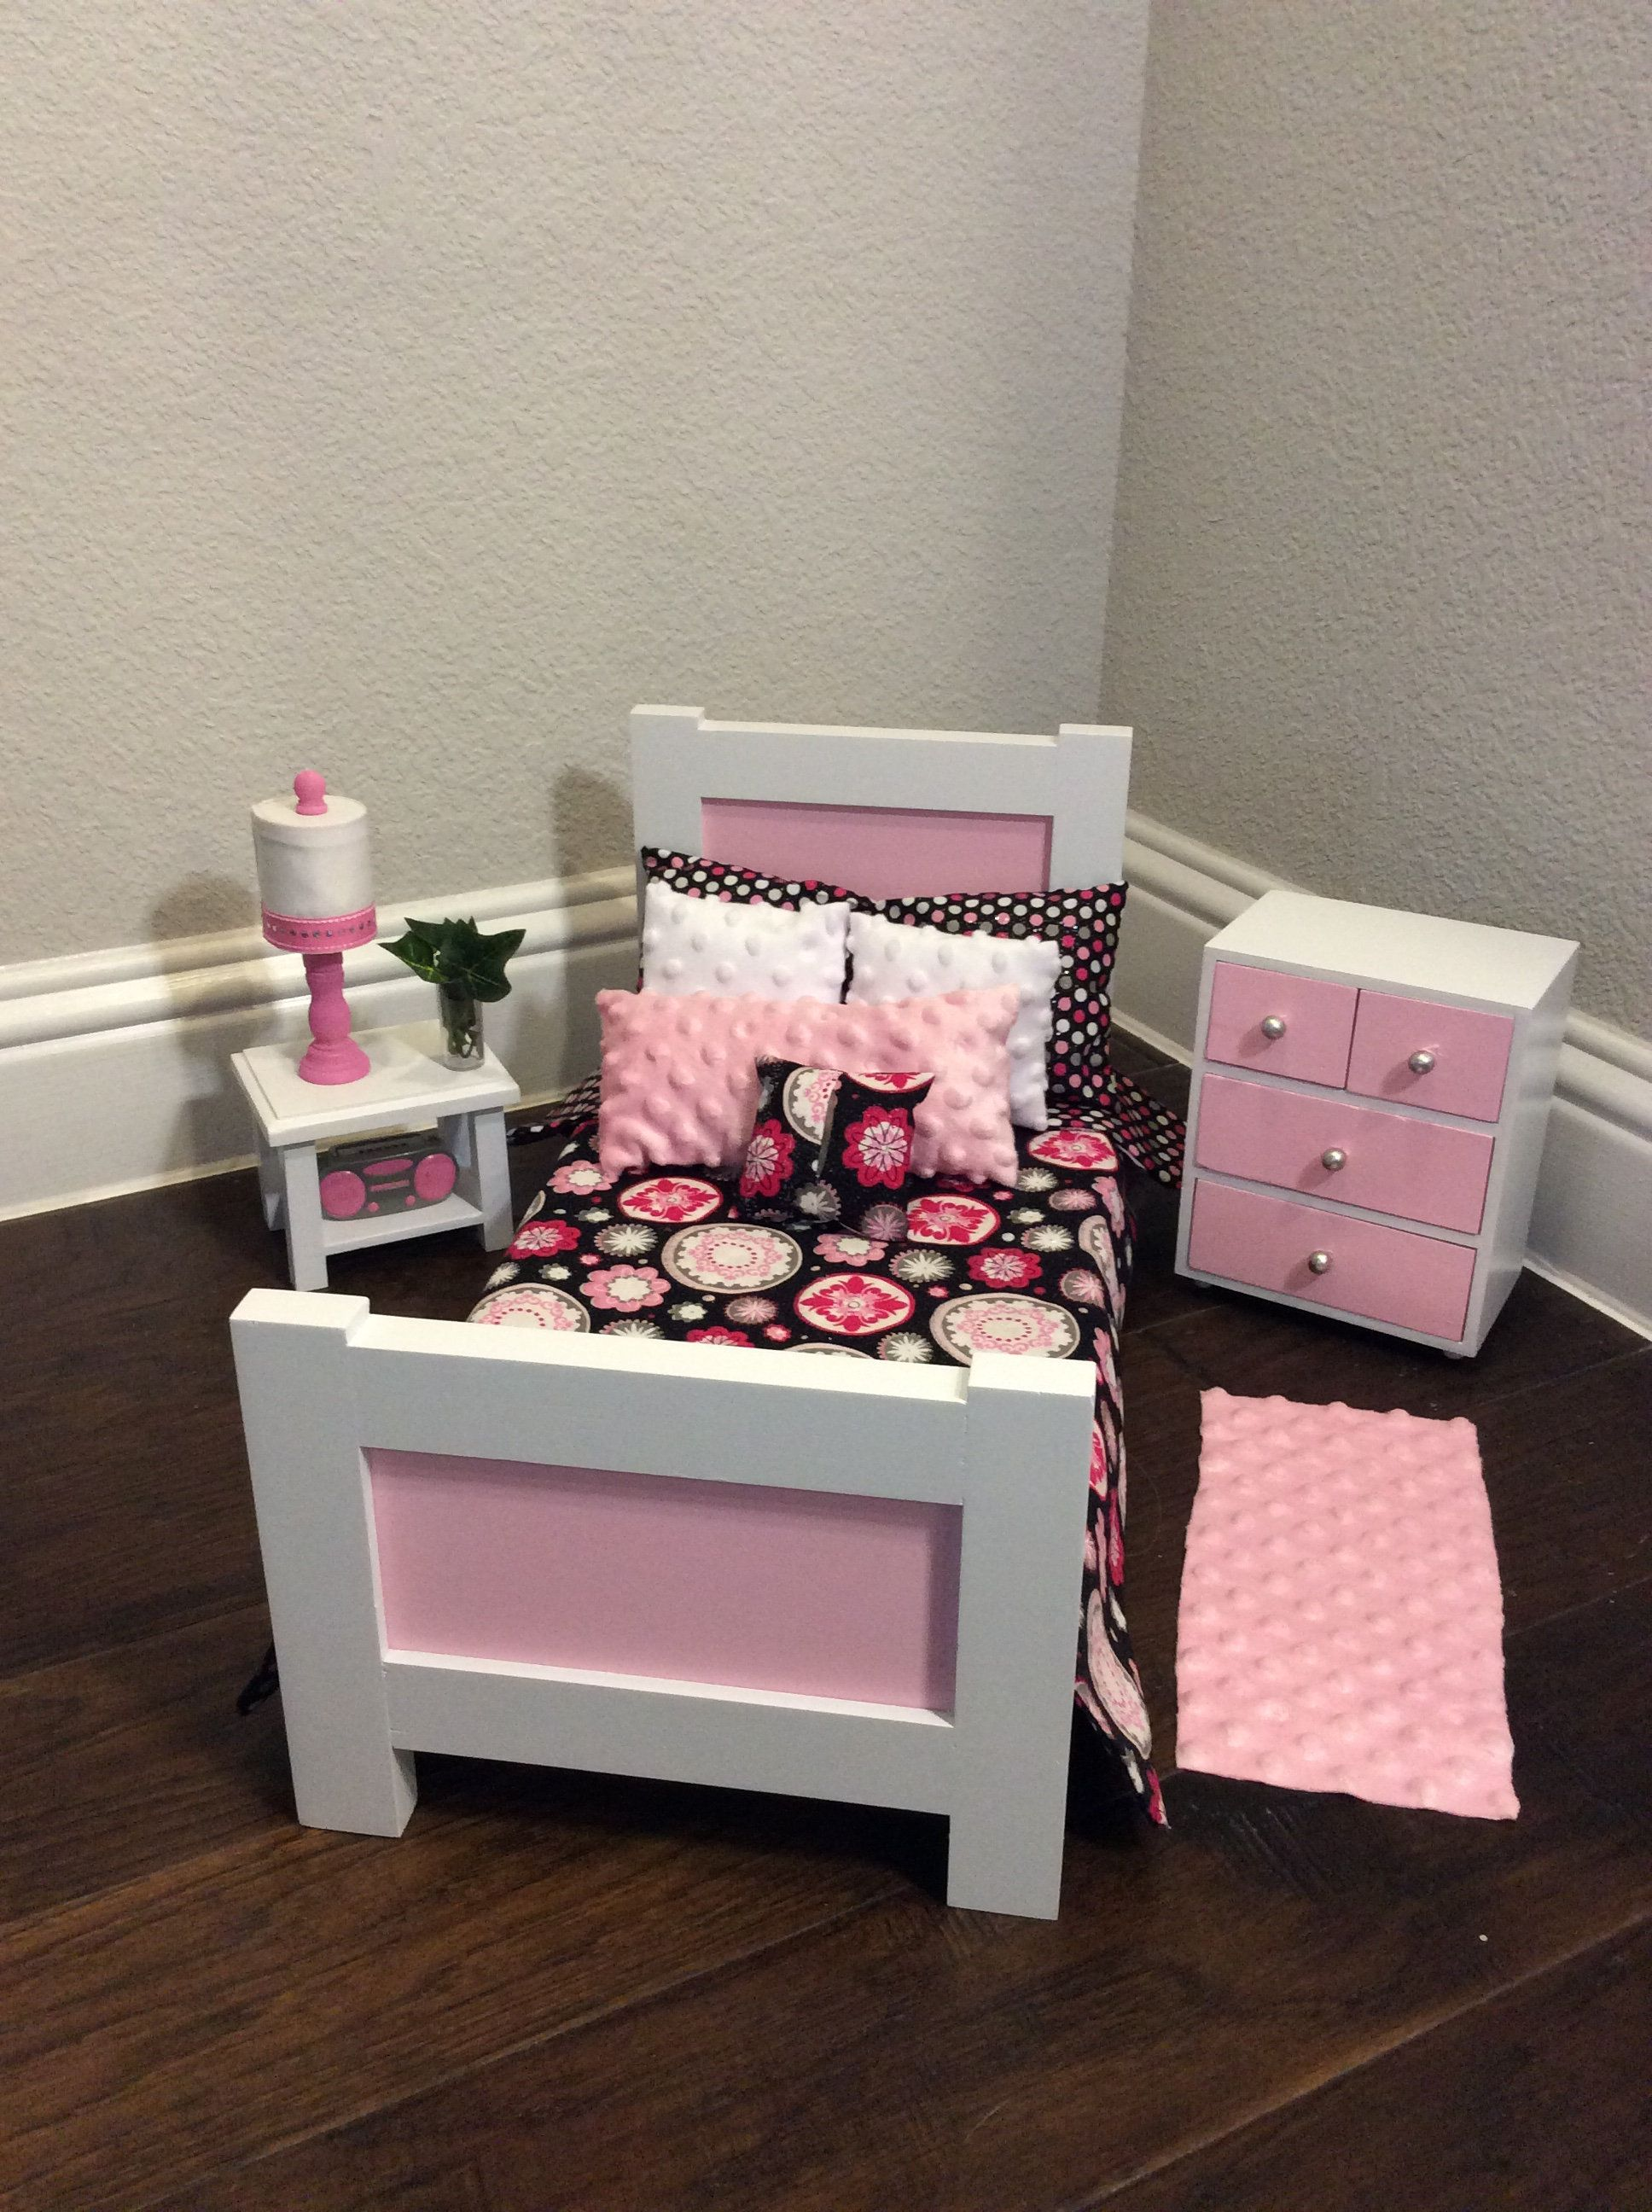 Sweet Dreams Bed Collection American Girl or any 18 inch